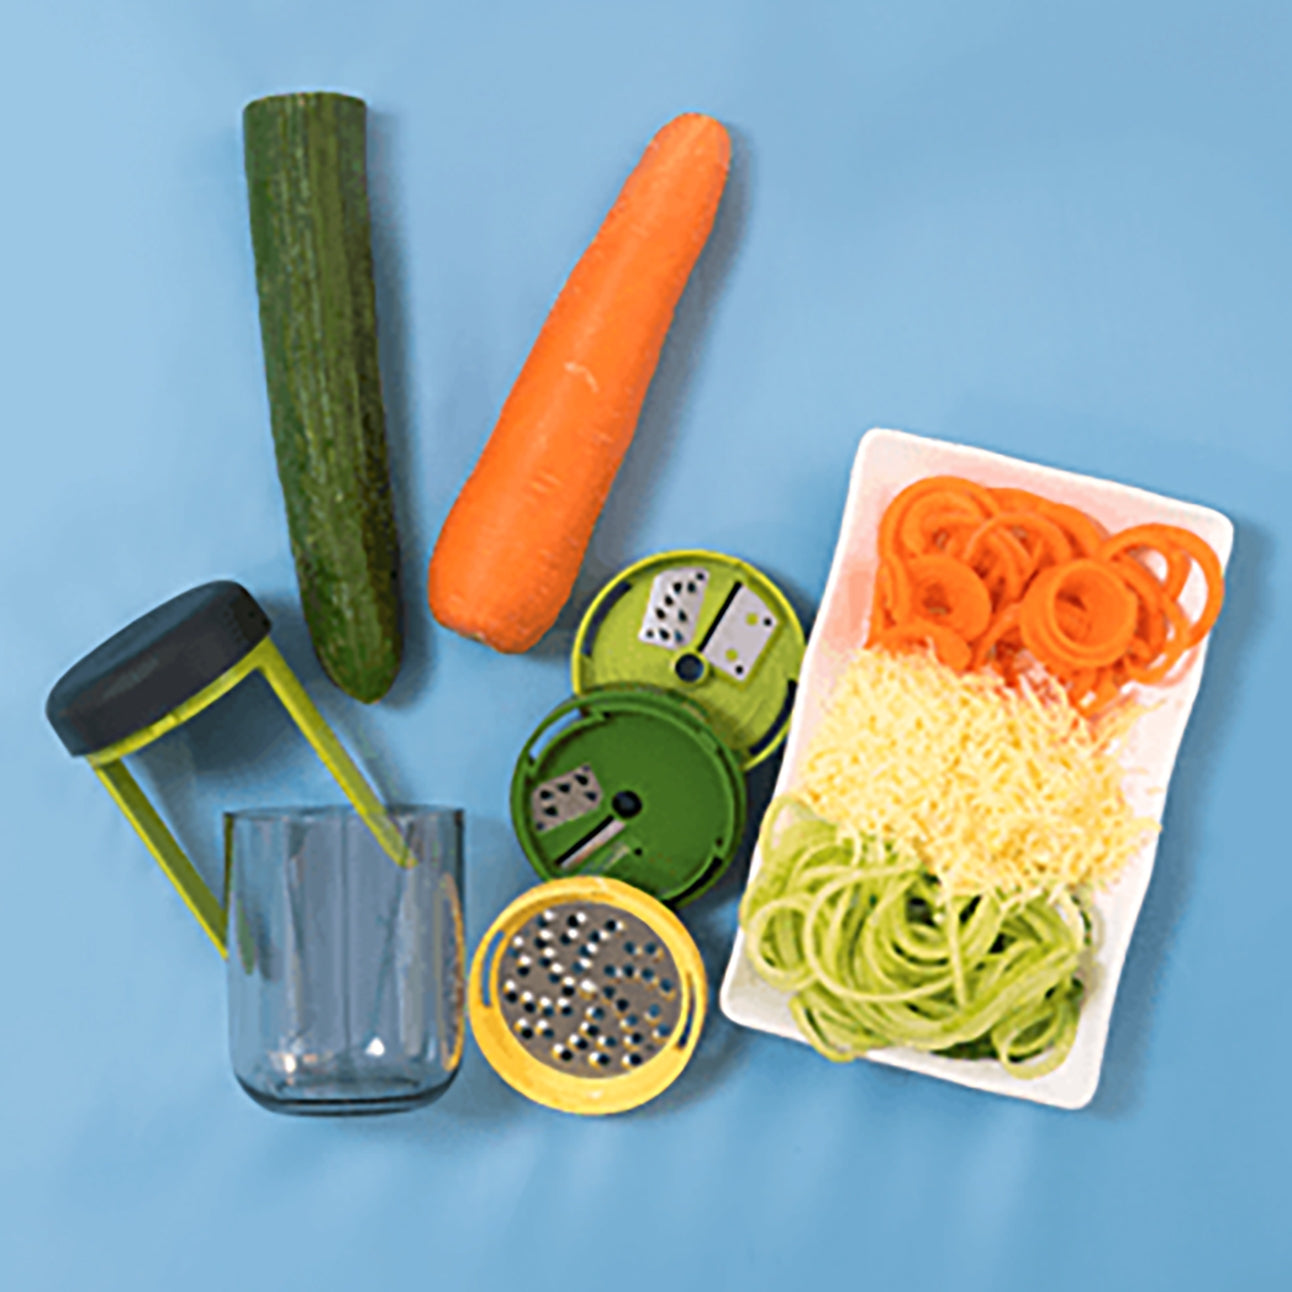 Compact 3-in-1 Spiralizer